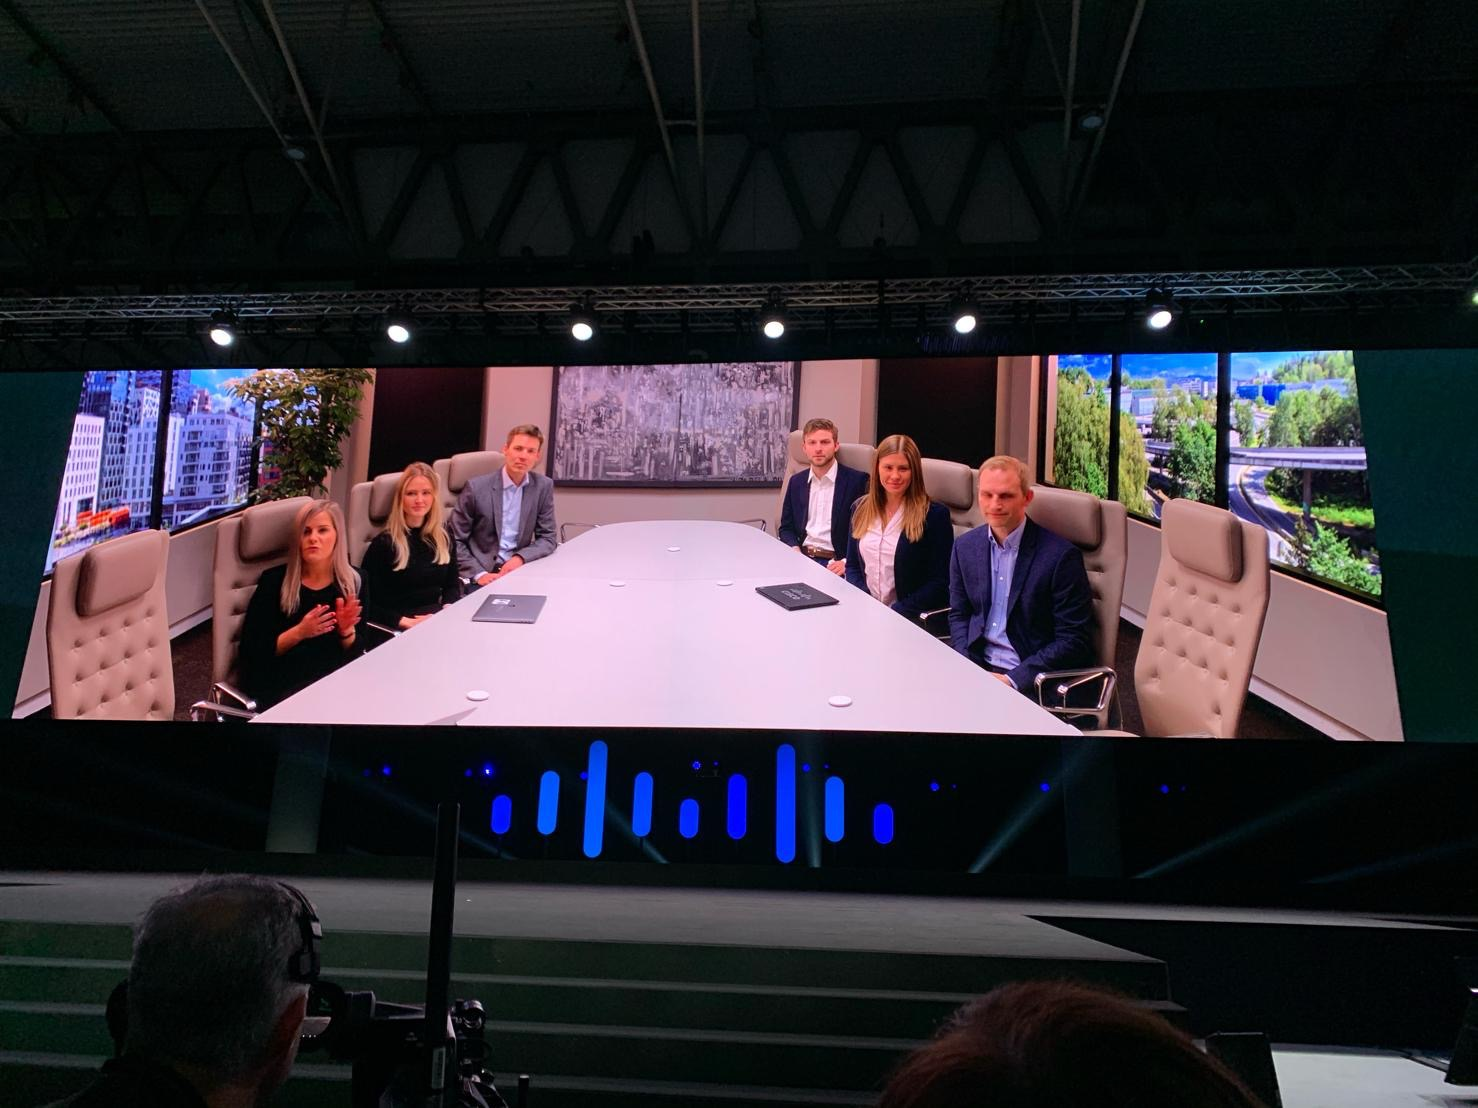 The Room Panorama demonstration during the Cisco Live Barcelona keynote presentation.